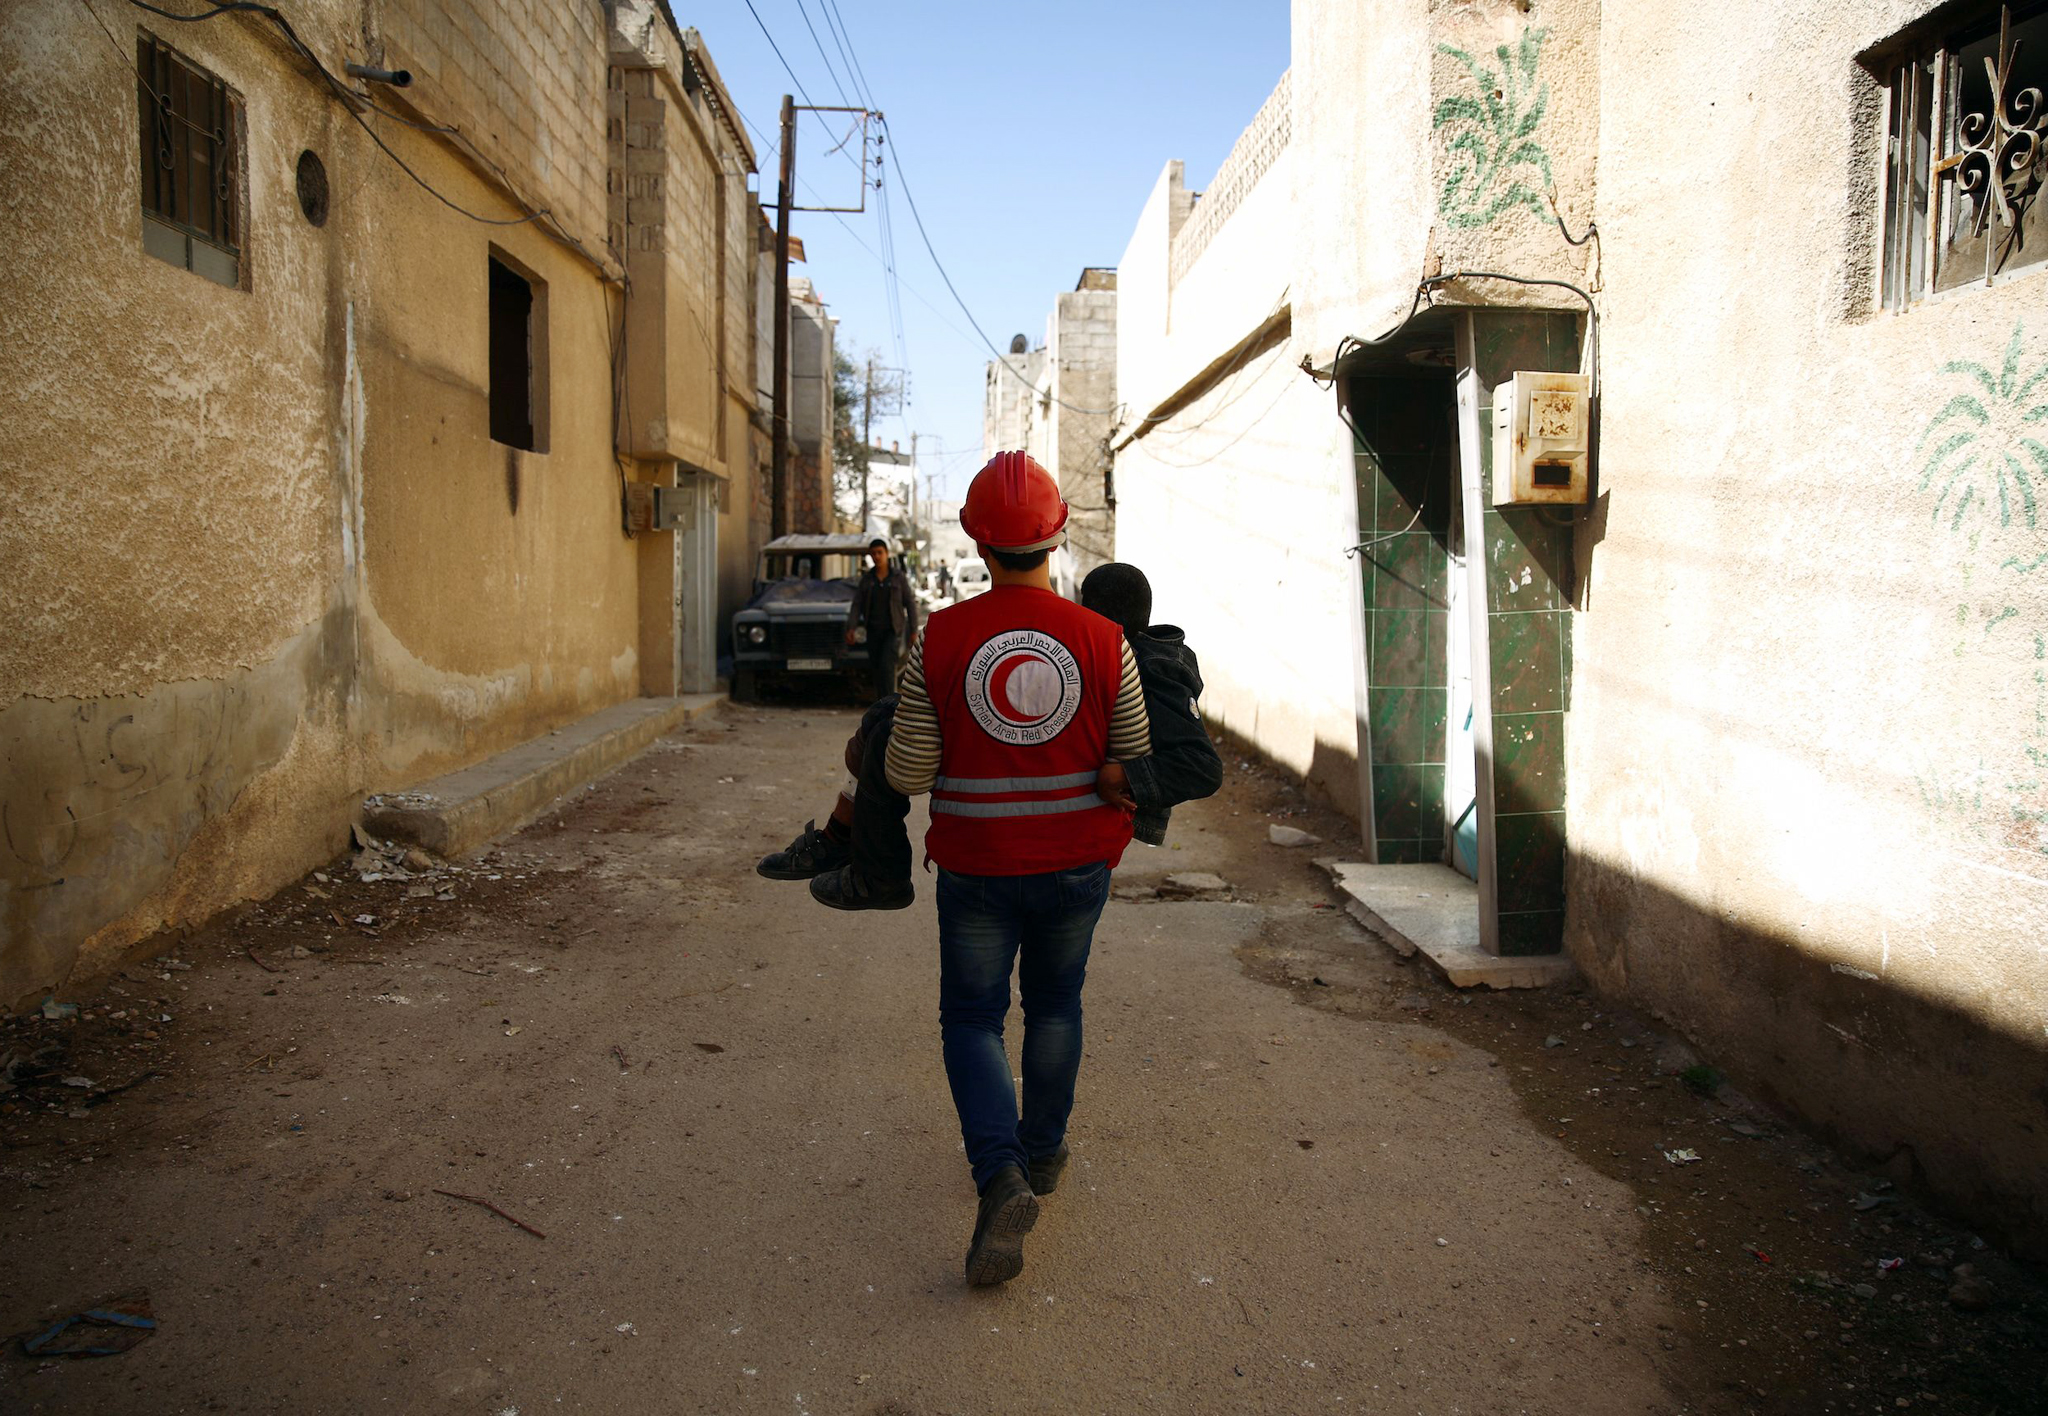 A member of the Syrian Arab Red Crescent...A member of the Syrian Arab Red Crescent carries a wounded boy following an airstrike in the rebel-held city of Douma in Eastern Ghouta, on February 26, 2016. Intense Russian air strikes and regime shelling battered rebel bastions across Syria, the Syrian Observatory for Human Rights said, just hours before a midnight deadline for a landmark ceasefire in the country's five-year civil war. / AFP / Abd DoumanyABD DOUMANY/AFP/Getty Images